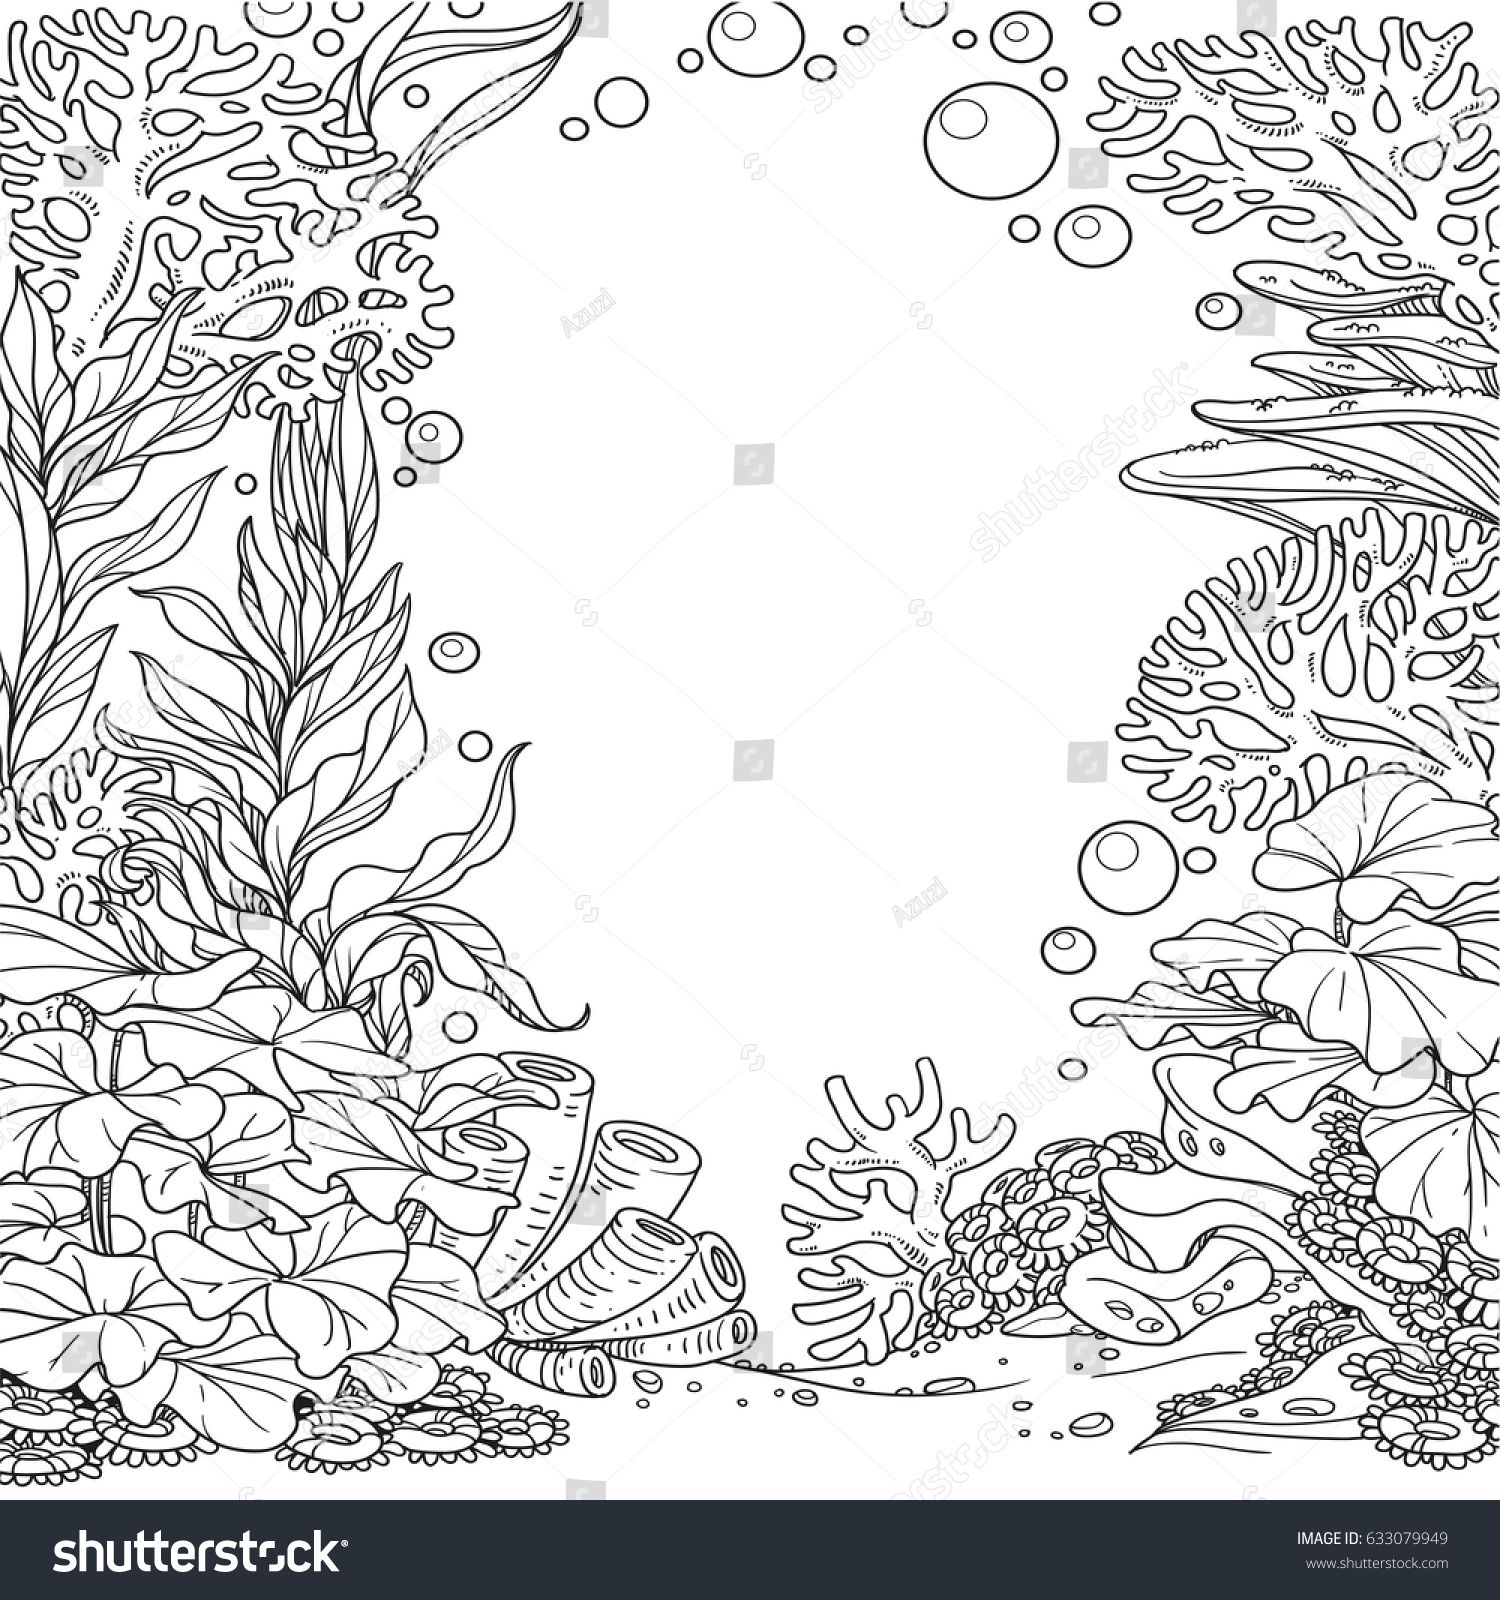 coral coloring pages - photo#24